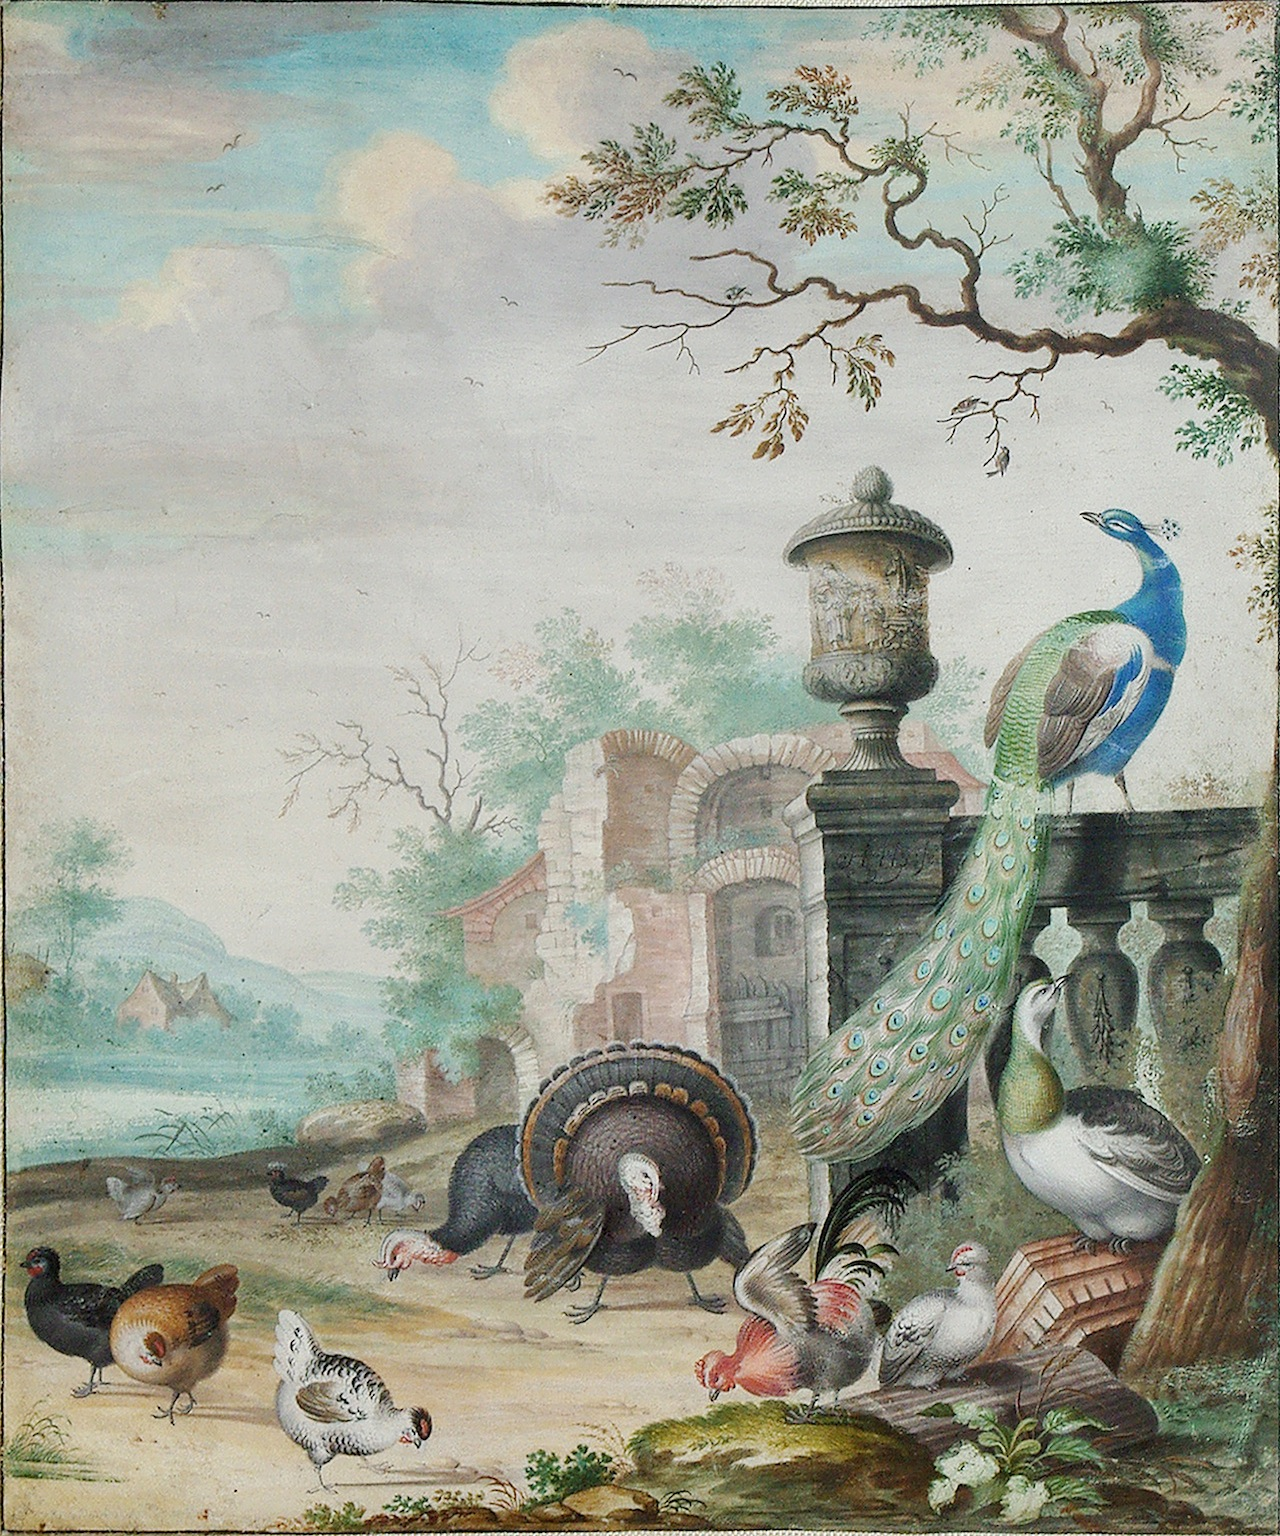 """""""A Peacock, a Parrot and other exotic birds in a park landscape,"""" (1694) by Herman Henstenburgh (Courtesy of Arader Galleries, Philadelphia, Pennsylvania)"""